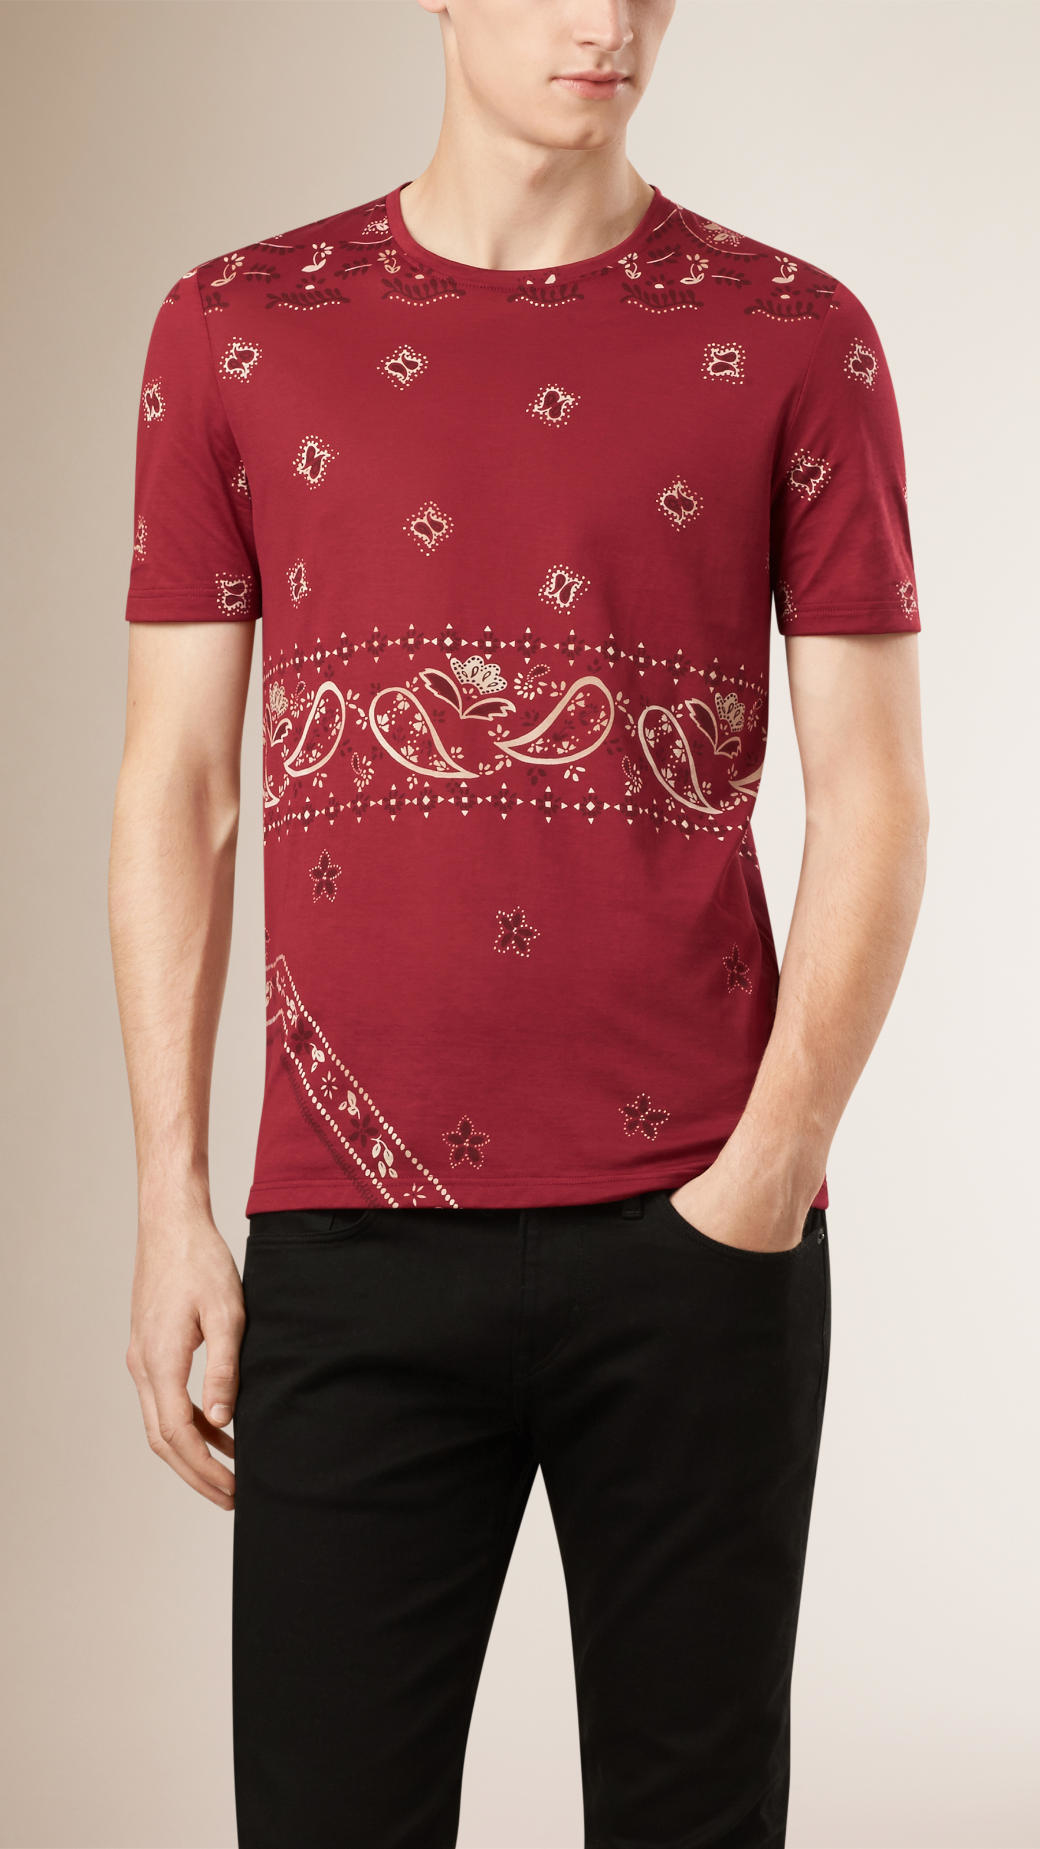 lyst burberry paisley print cotton t shirt in red for men. Black Bedroom Furniture Sets. Home Design Ideas